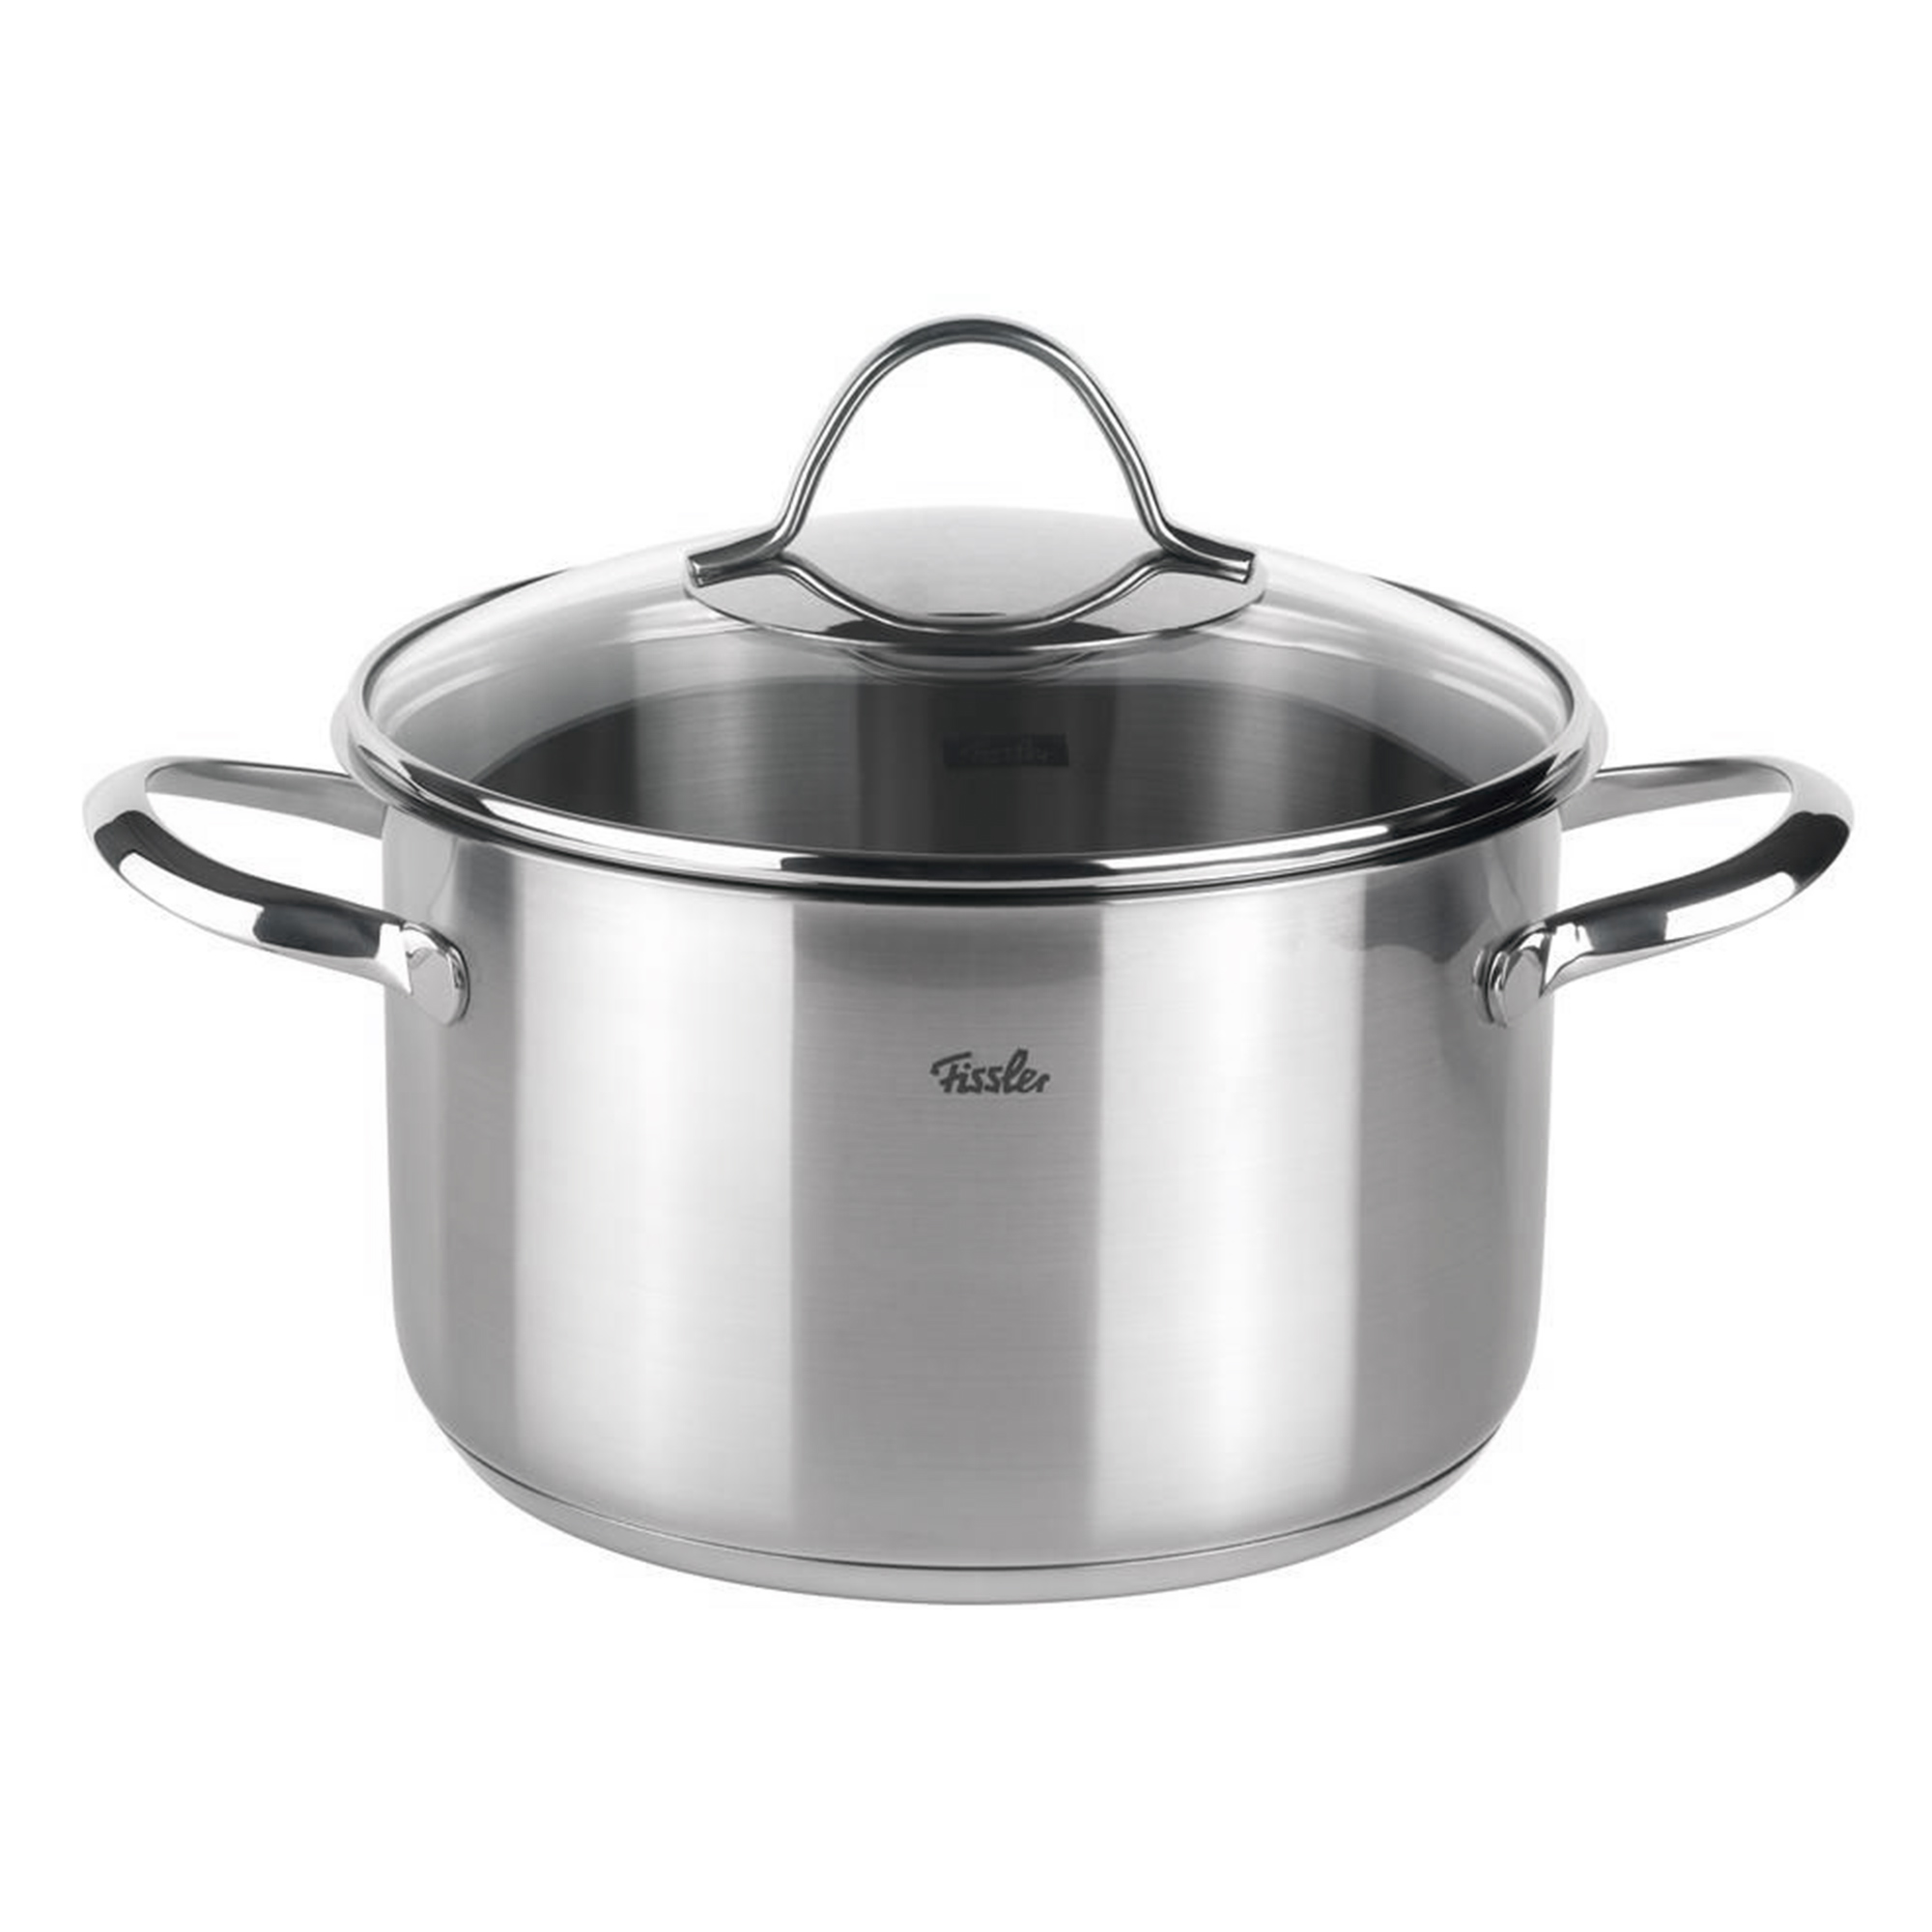 Кастрюля Fissler Paris 20 см 3,6 л кастрюля fissler valea 2 л